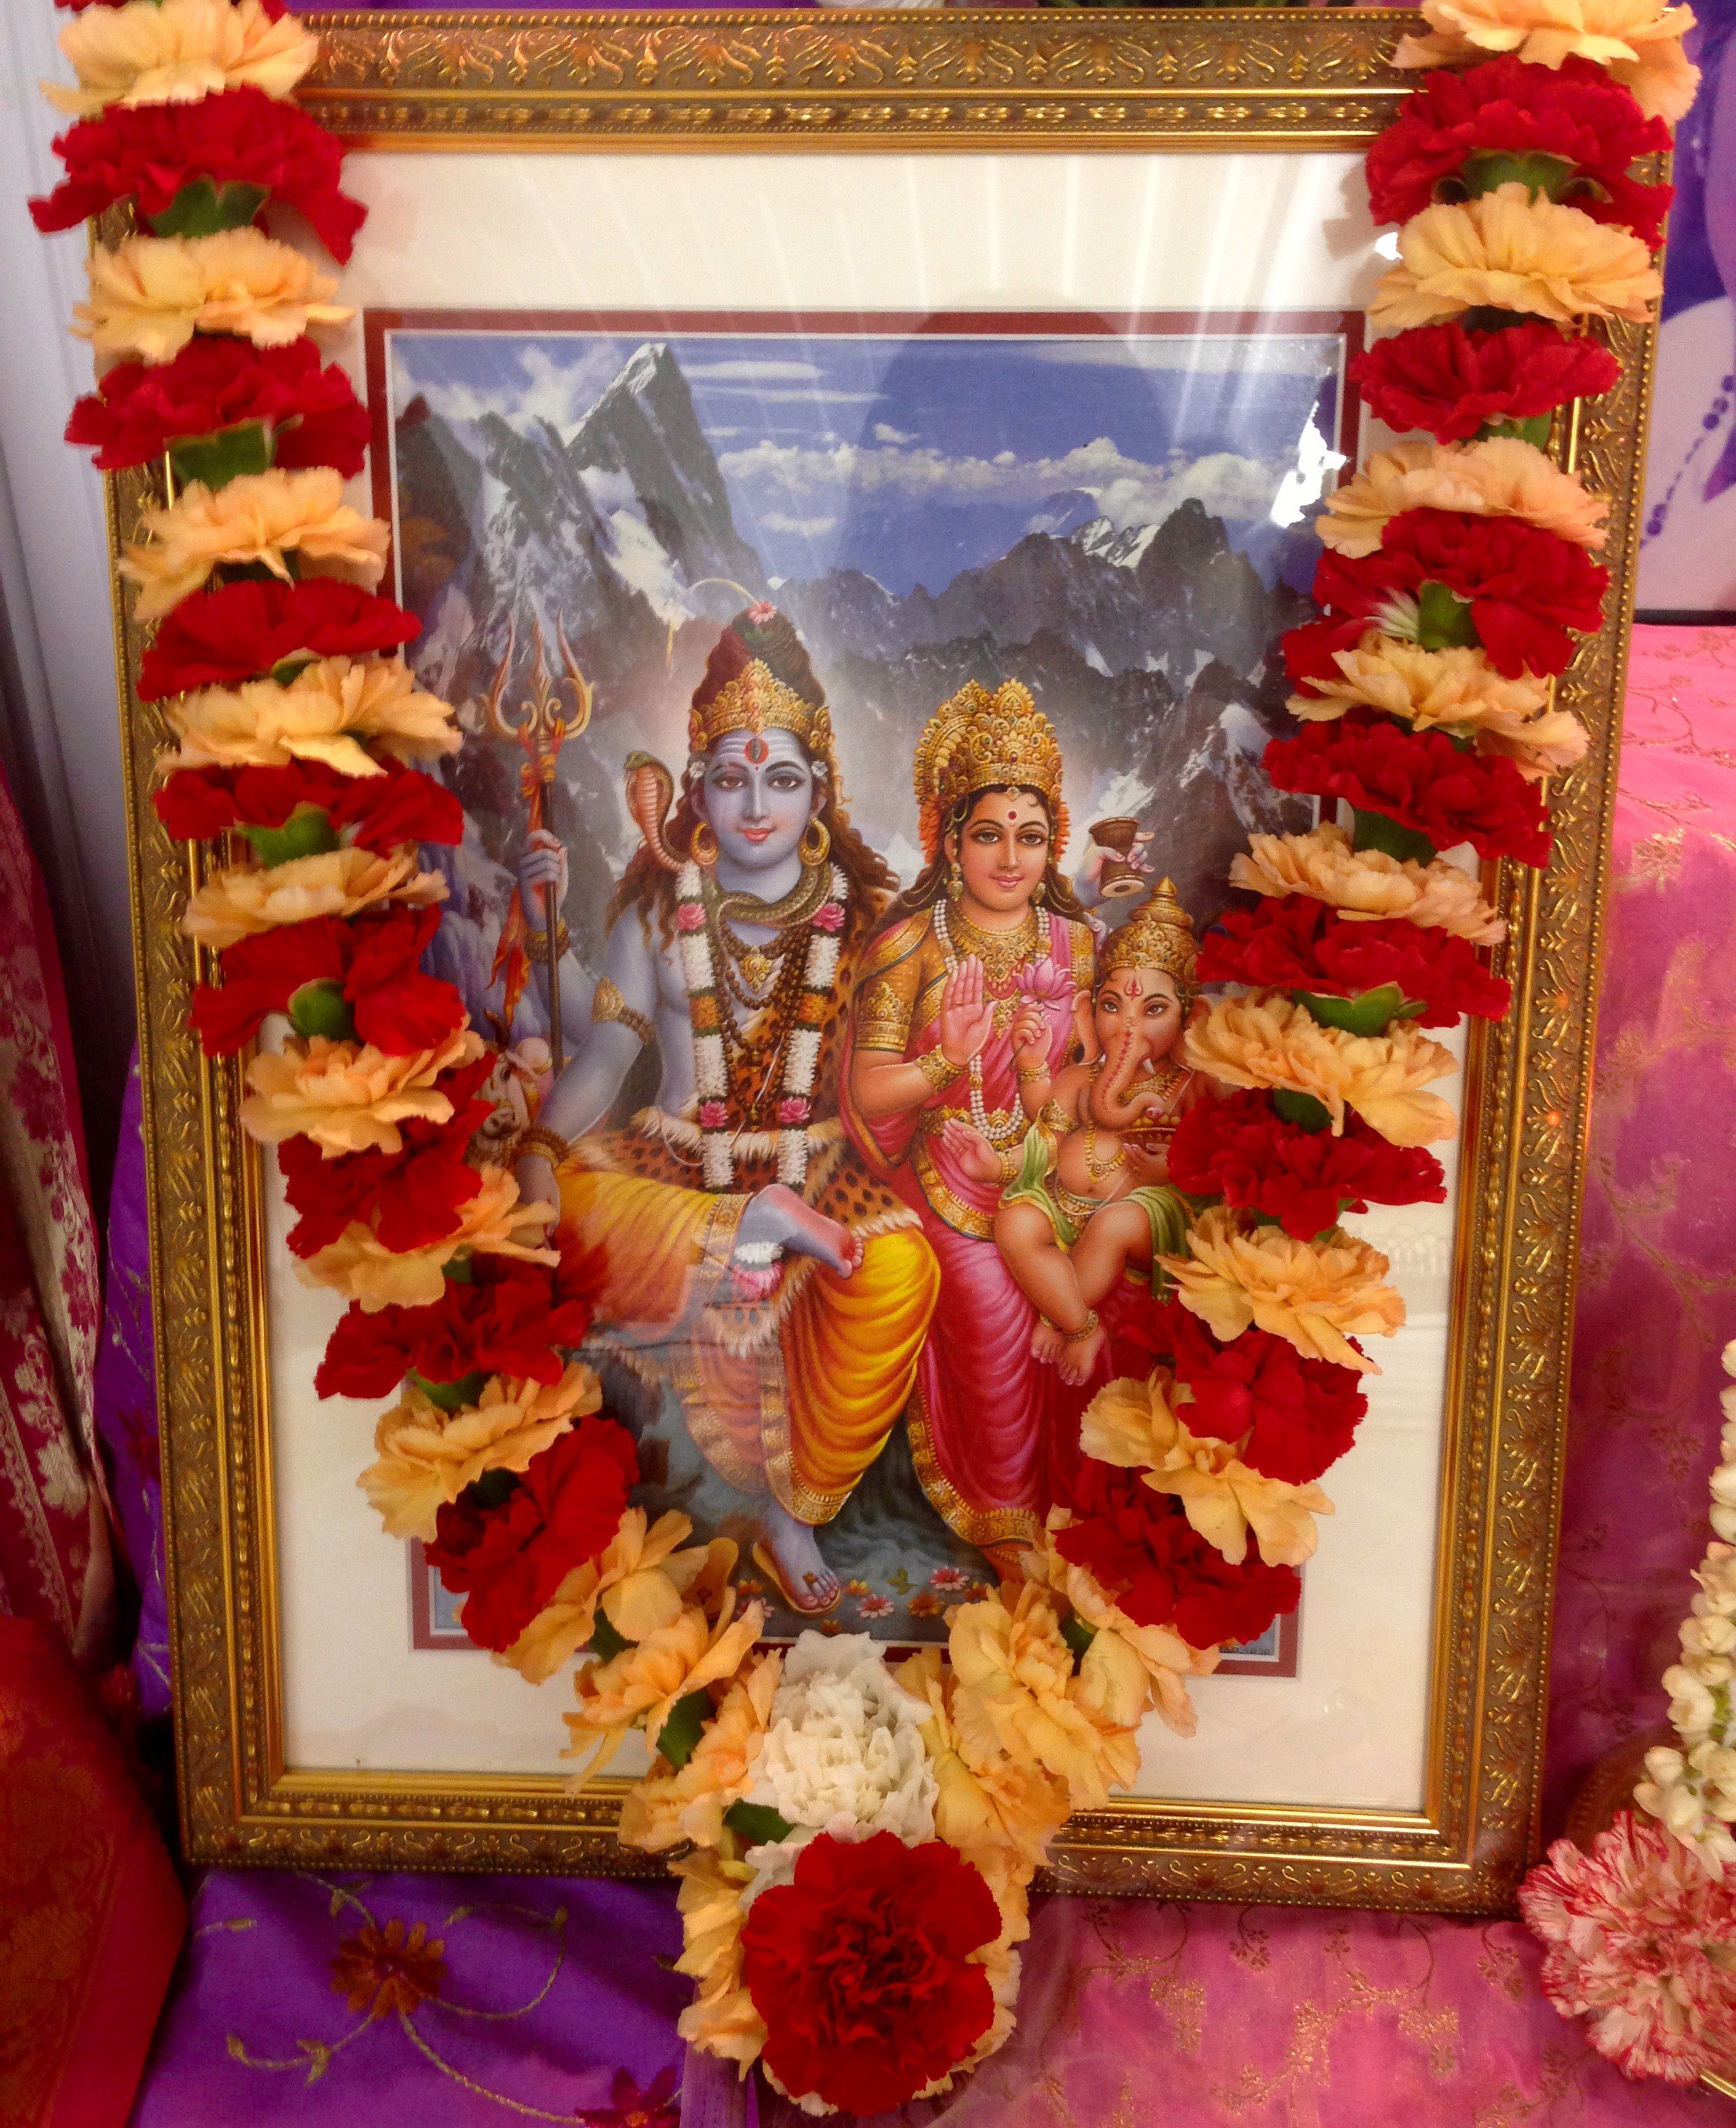 Picture of Shiva, Parvati and Ganesha with garland